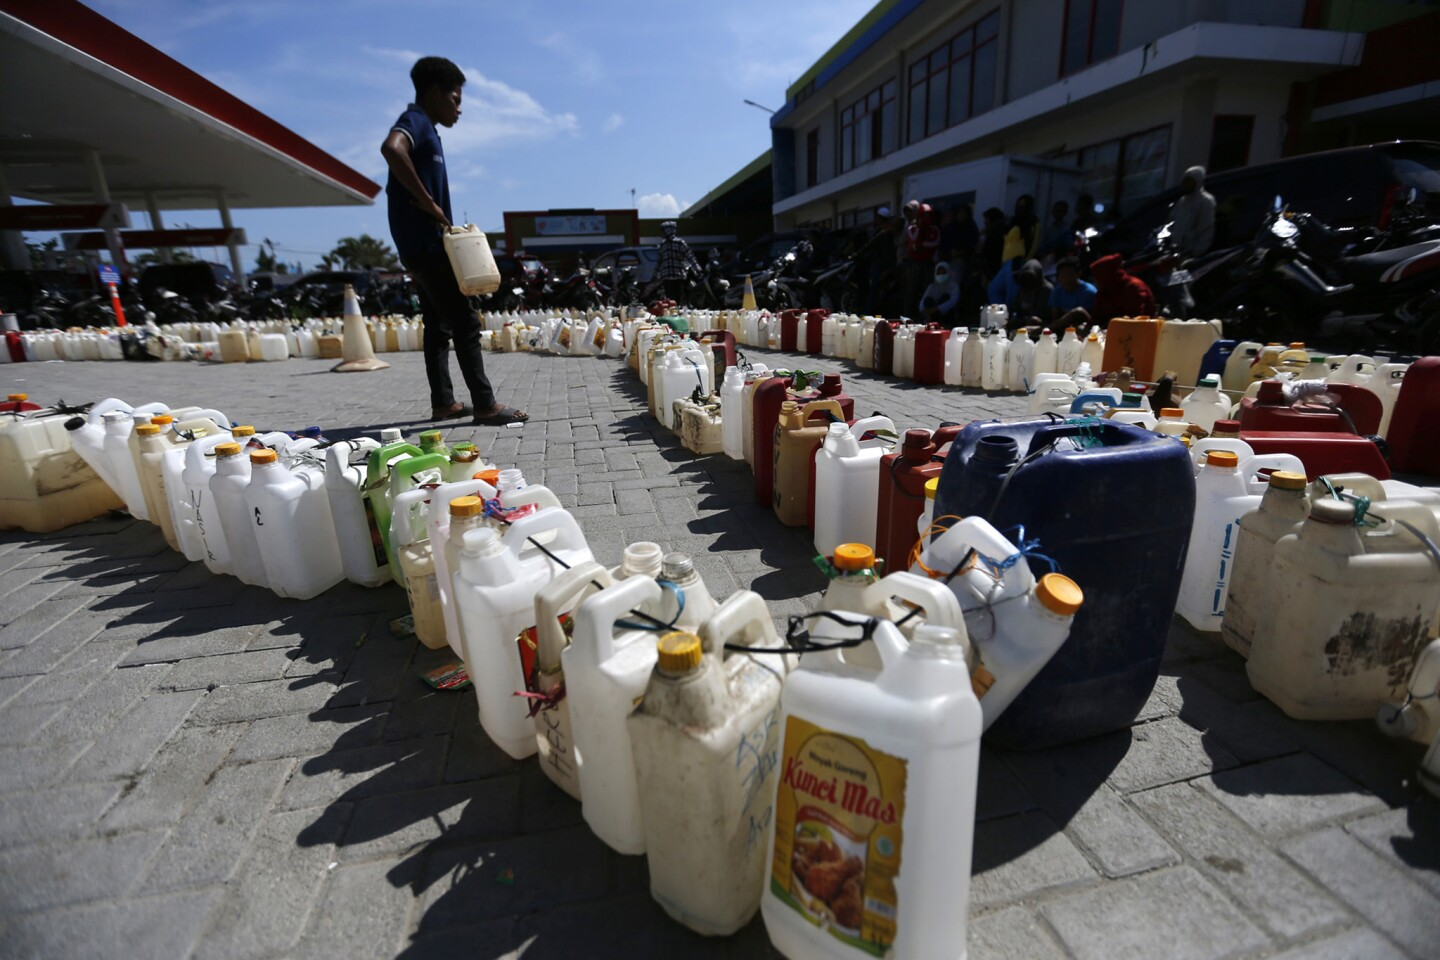 A man looks over lines of containers as people queue up Friday at a gas station in Palu, Central Sulawesi, Indonesia.